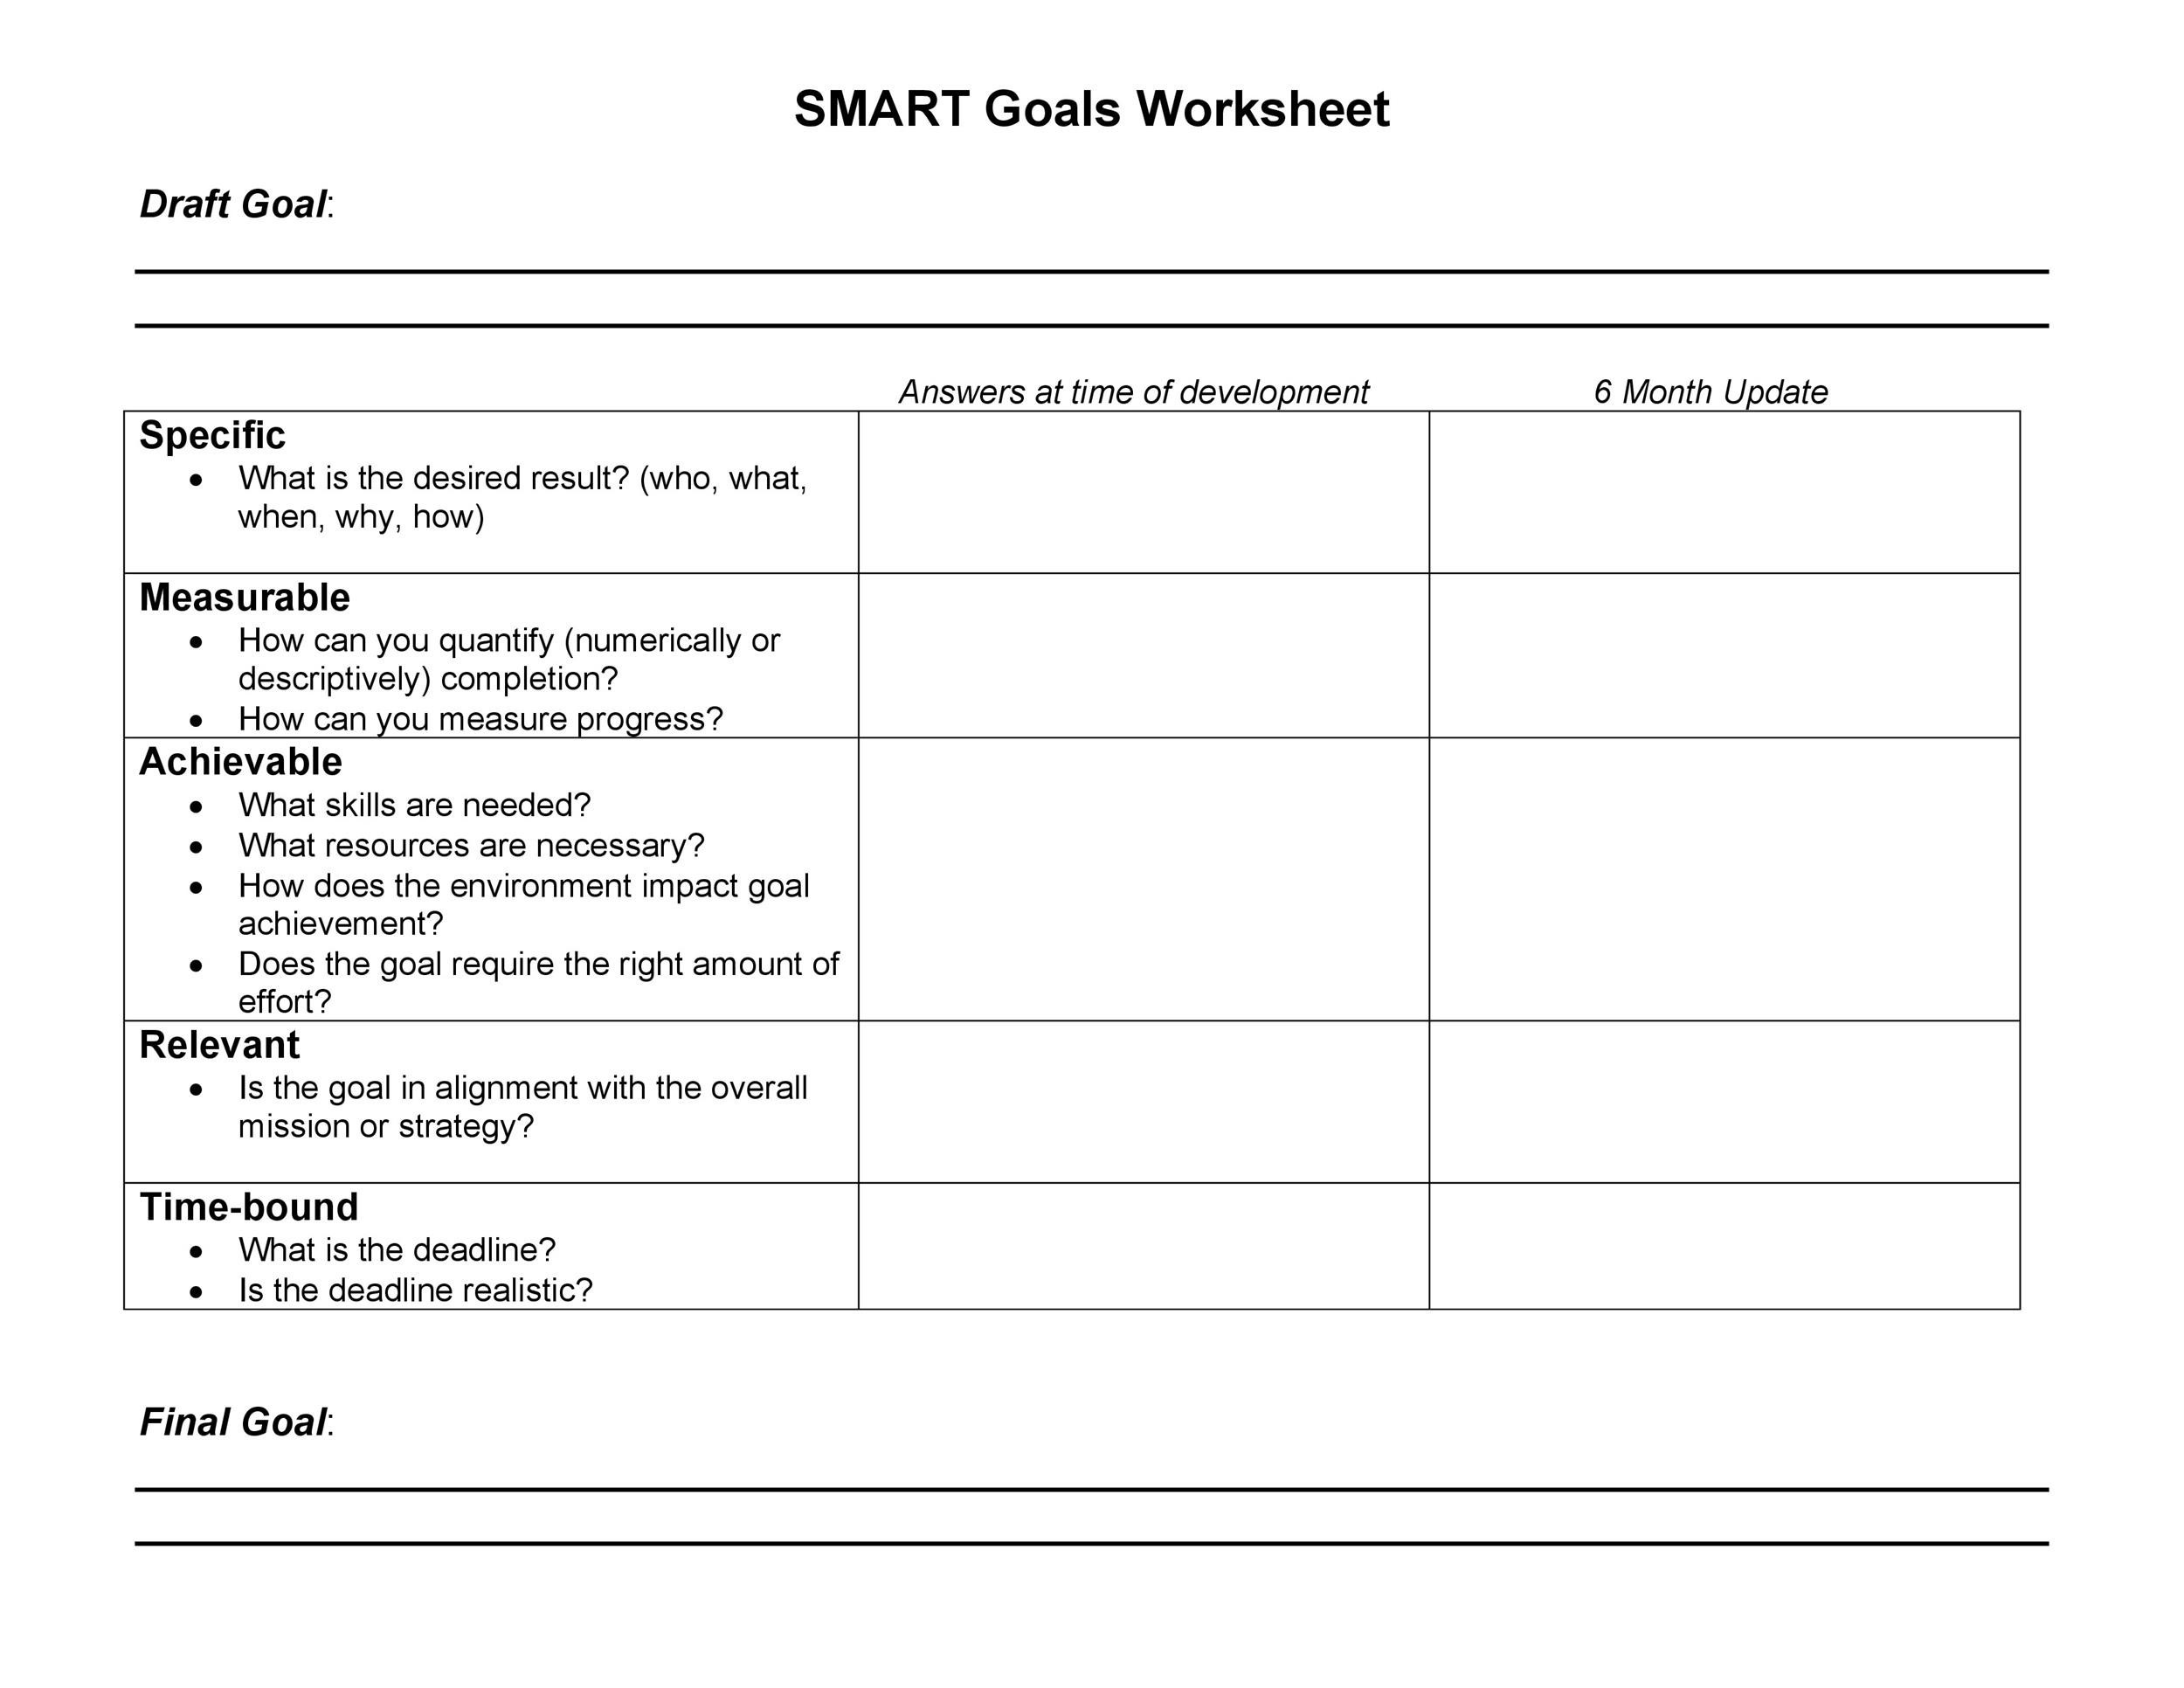 setting life goals template - 48 smart goals templates examples worksheets template lab